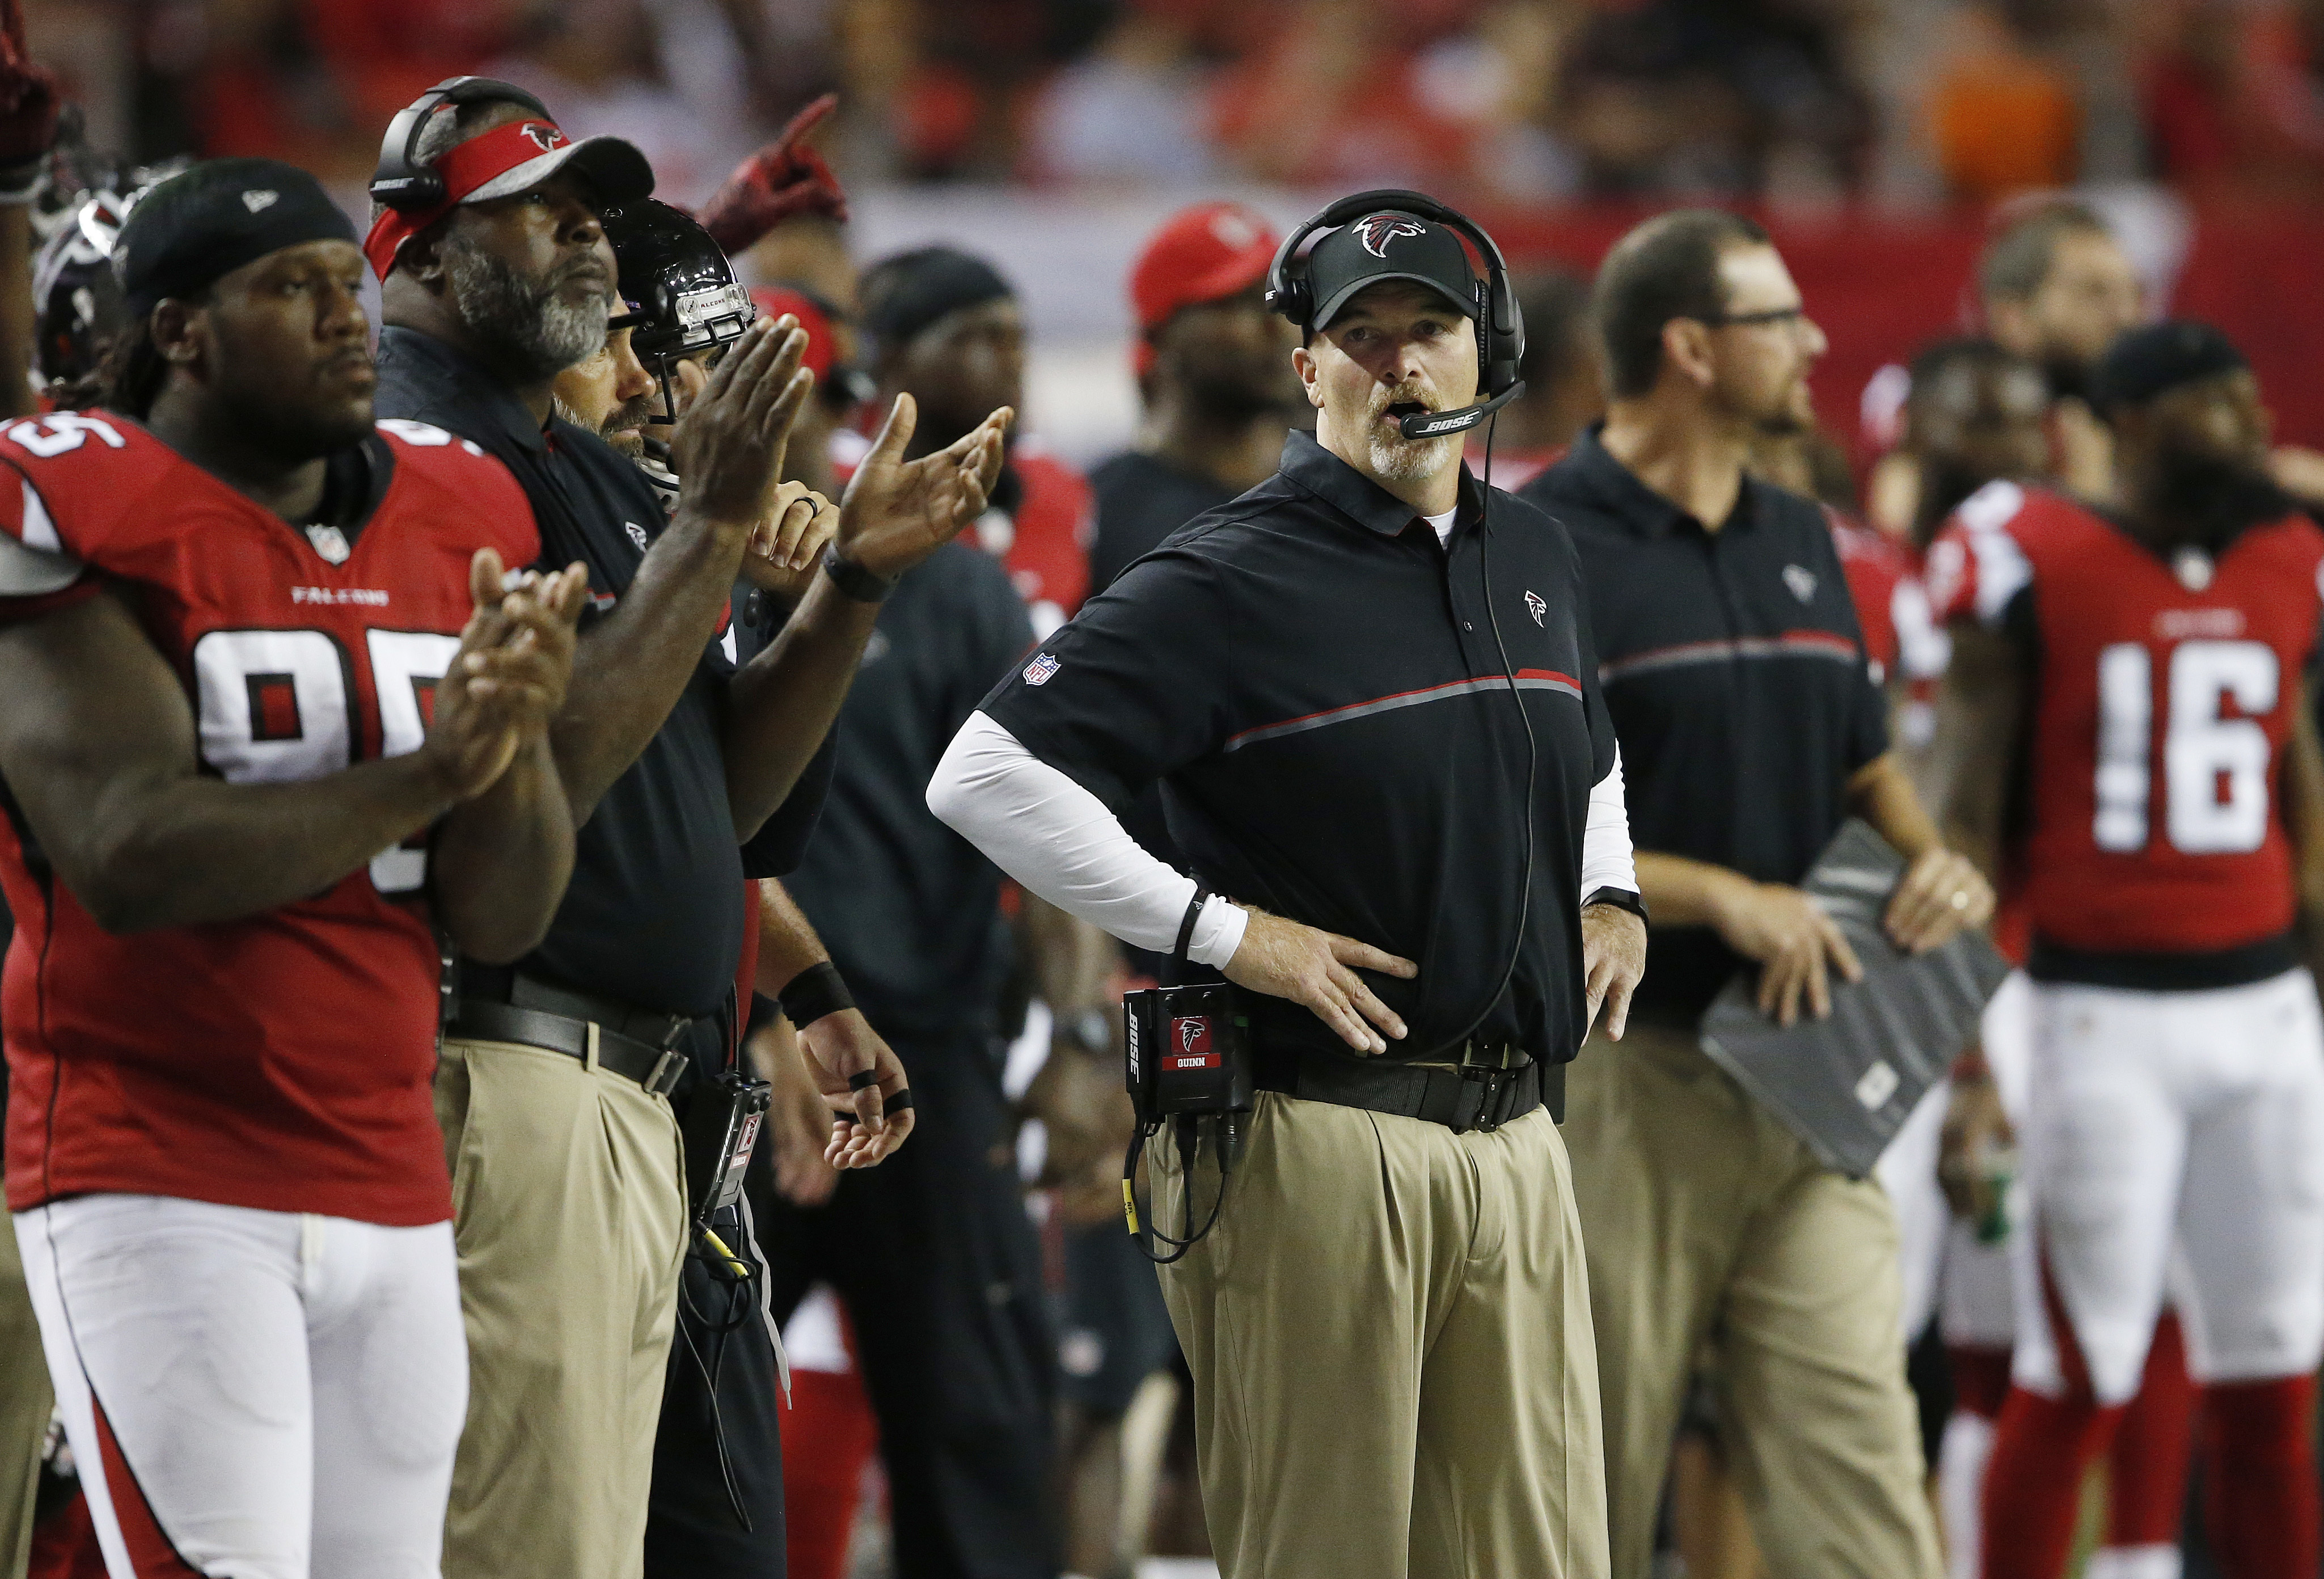 FILE - In this Sept. 1, 2016, file photo, Atlanta Falcons head coach Dan Quinn watches play against the Jacksonville Jaguars during the first half of a preseason NFL football game in Atlanta. Quinn says his team has grown closer since the front office red